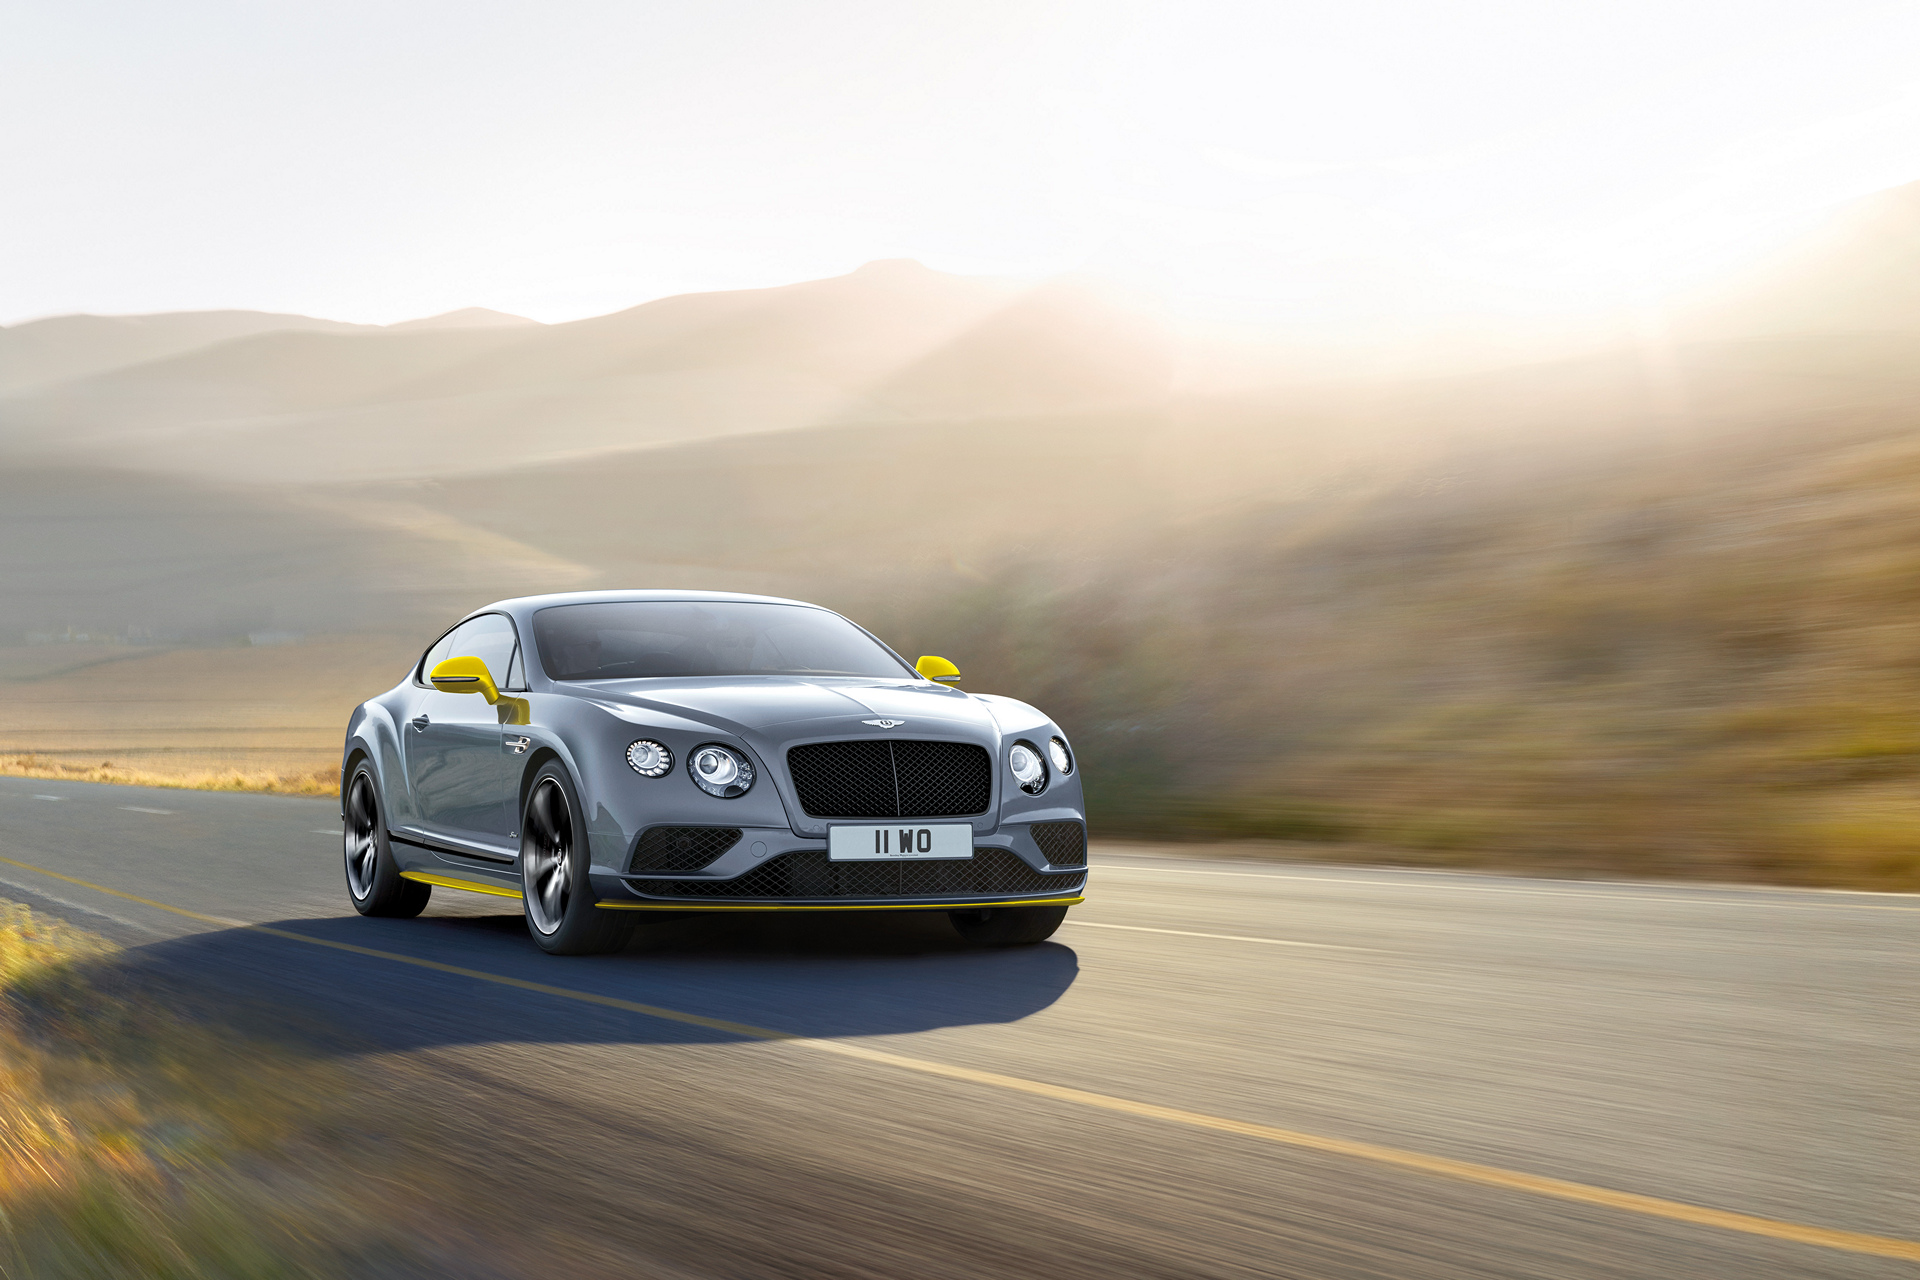 New Continental GT Speed Black Edition © Volkswagen AG